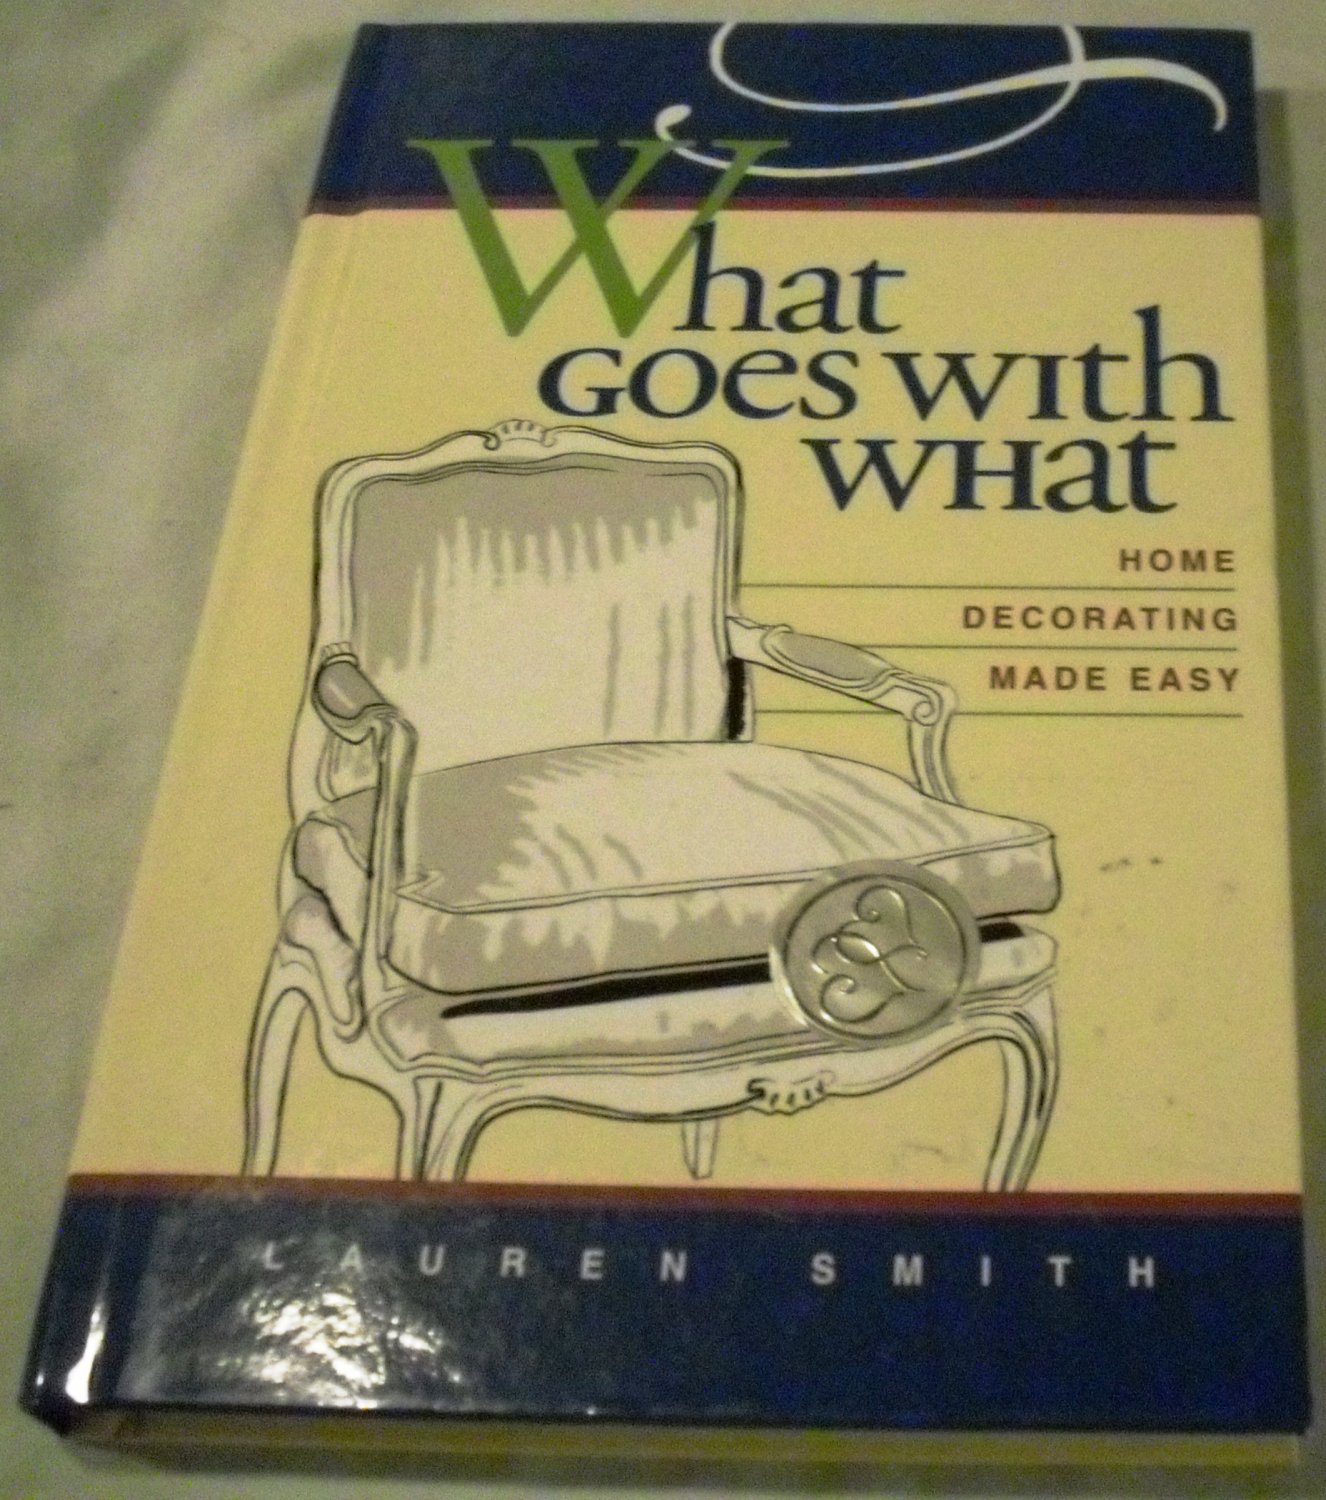 What Goes with What, Home Decorating Made Easy by Lauren Smith (2001)